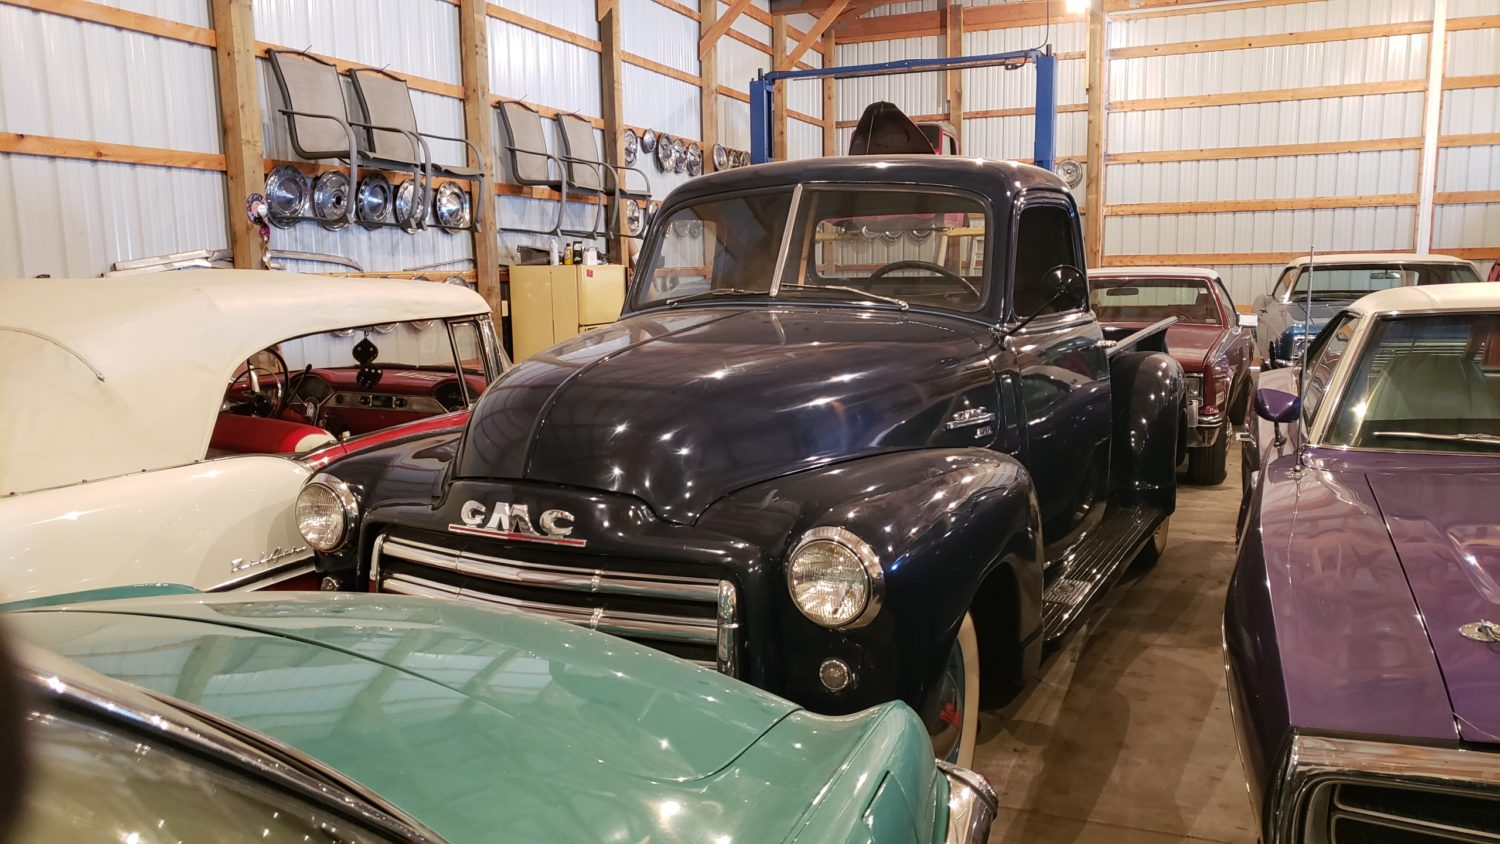 Fabulous Convertibles-Muscle- Antique Tractors & More! The Windels Collection LIVE ONSITE & Online BIdding - image 5